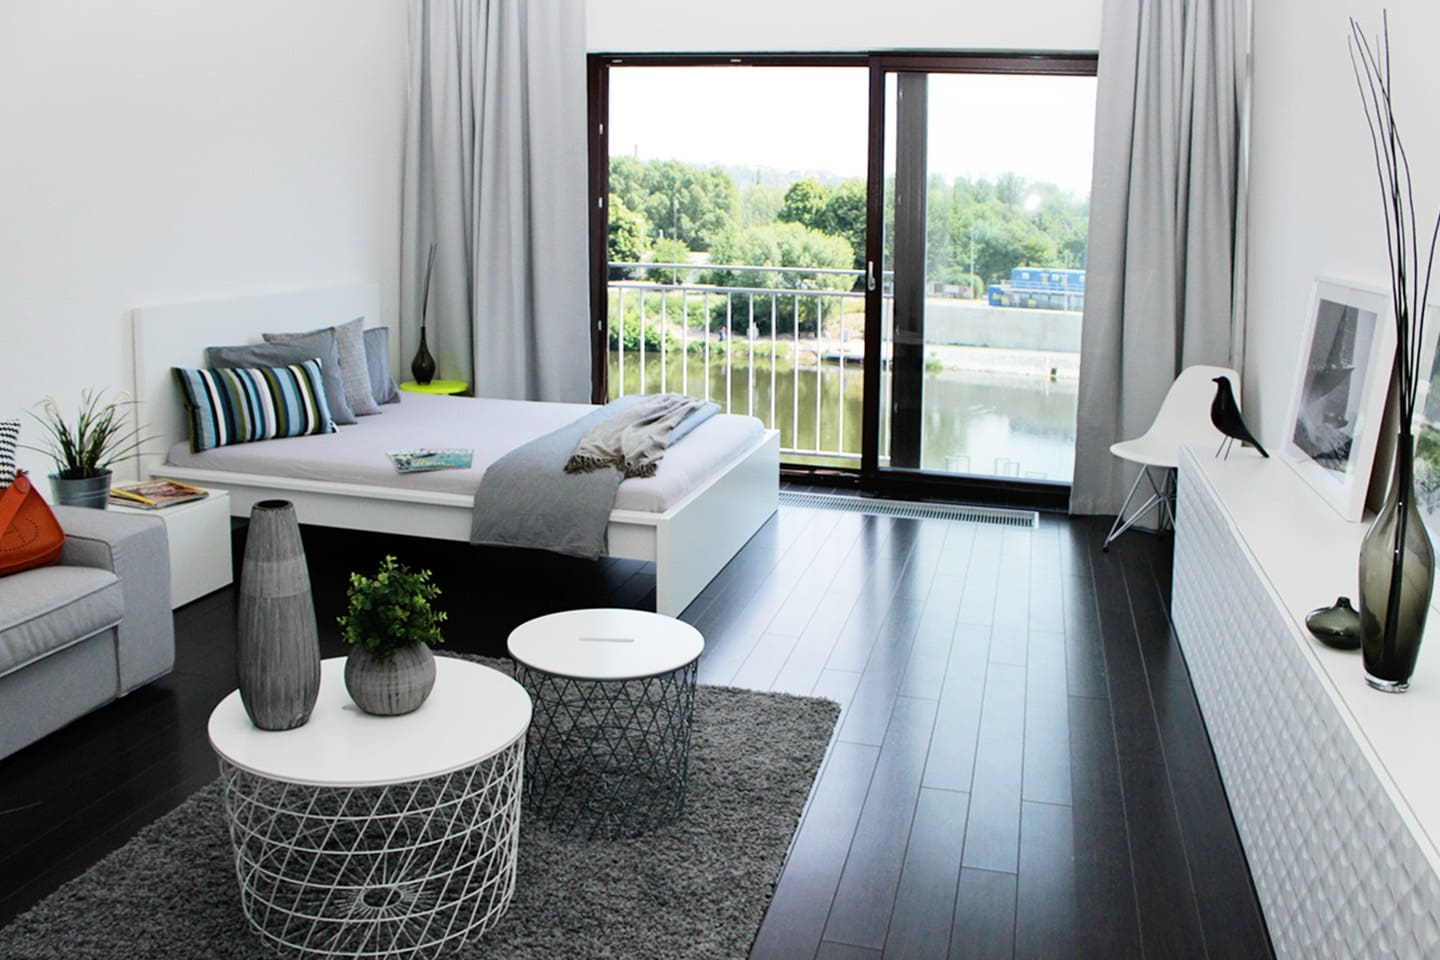 TRENDY MARINA STUDIO WITH A RIVERSIDE VIEW